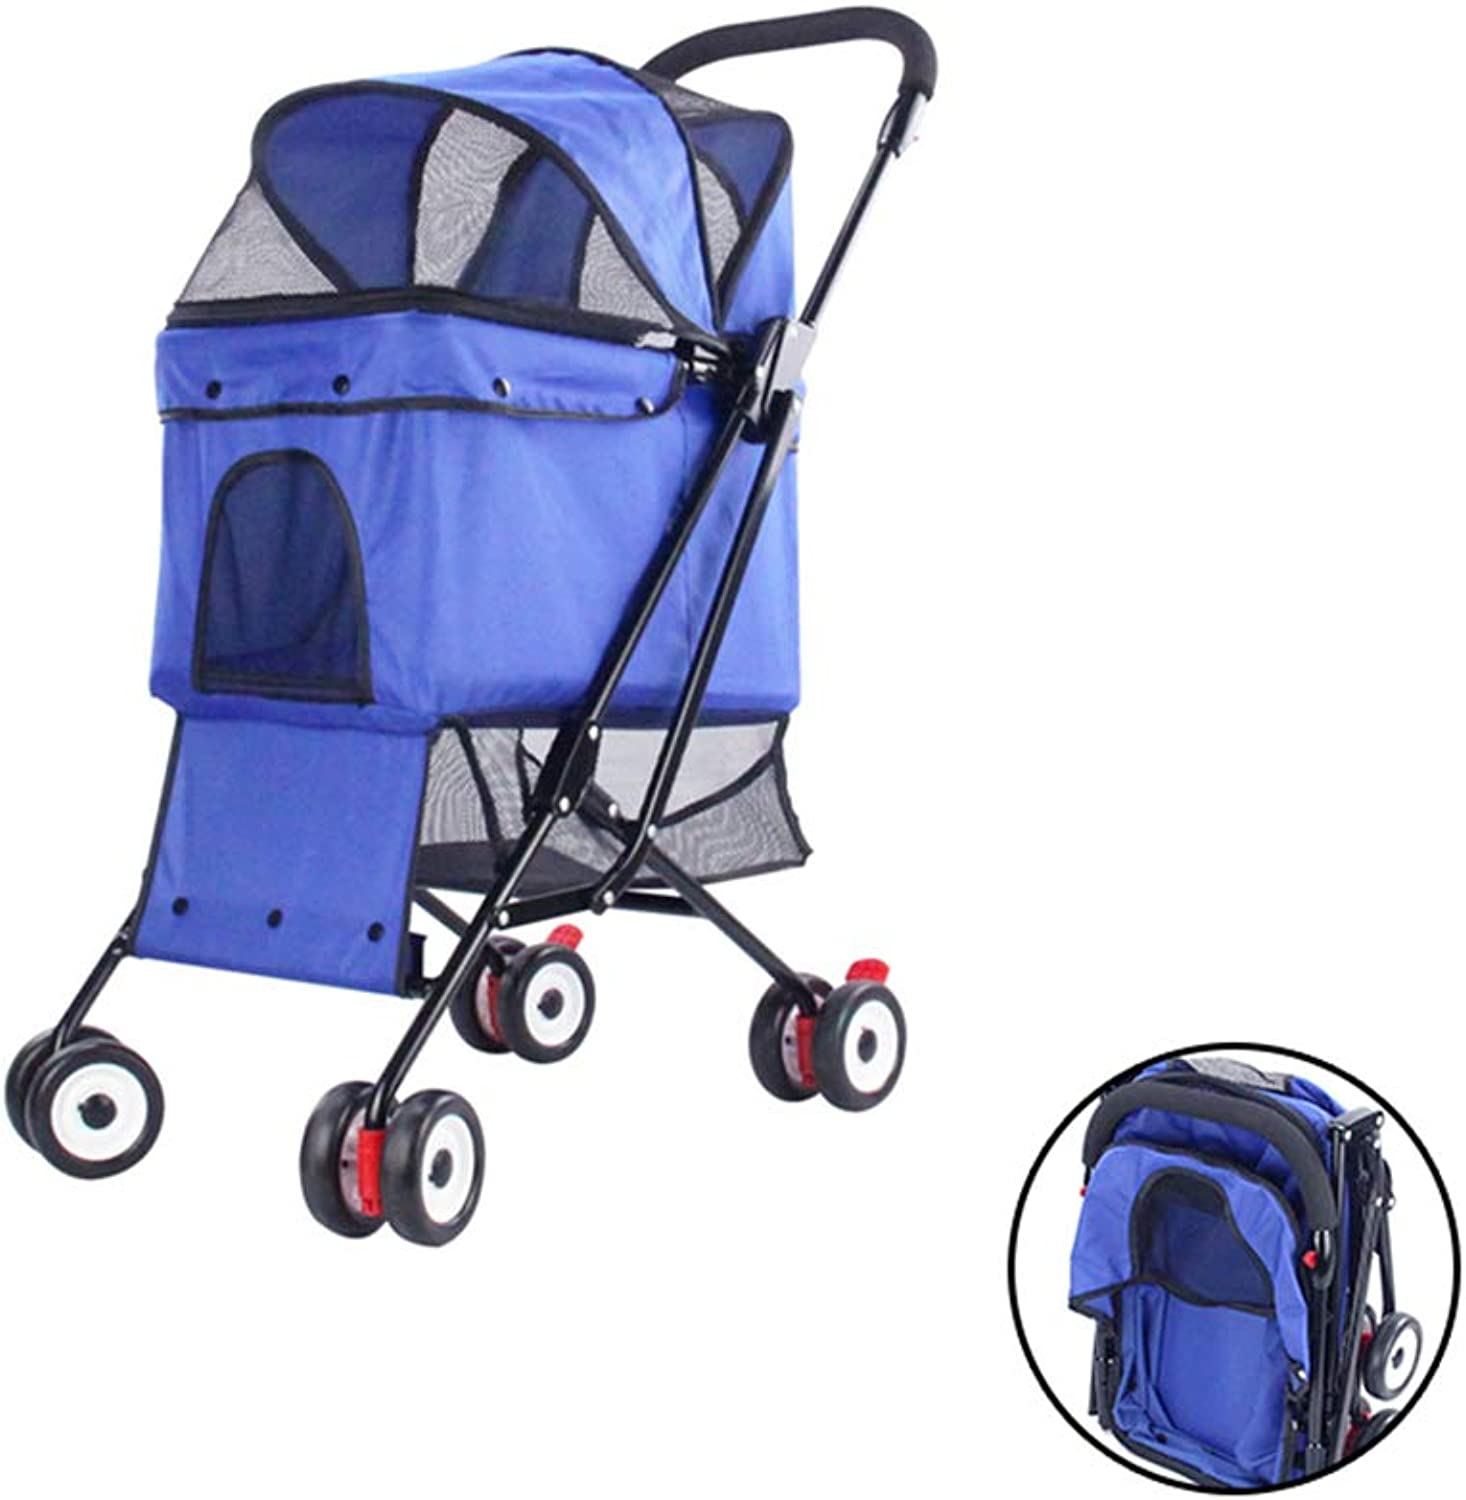 PETSUPPLY Pet Travel Stroller Cat Dog Pushchair Trolley Puppy Jogger Carrier Four Wheels,Foldable, Can Be Placed In The Suitcase,B